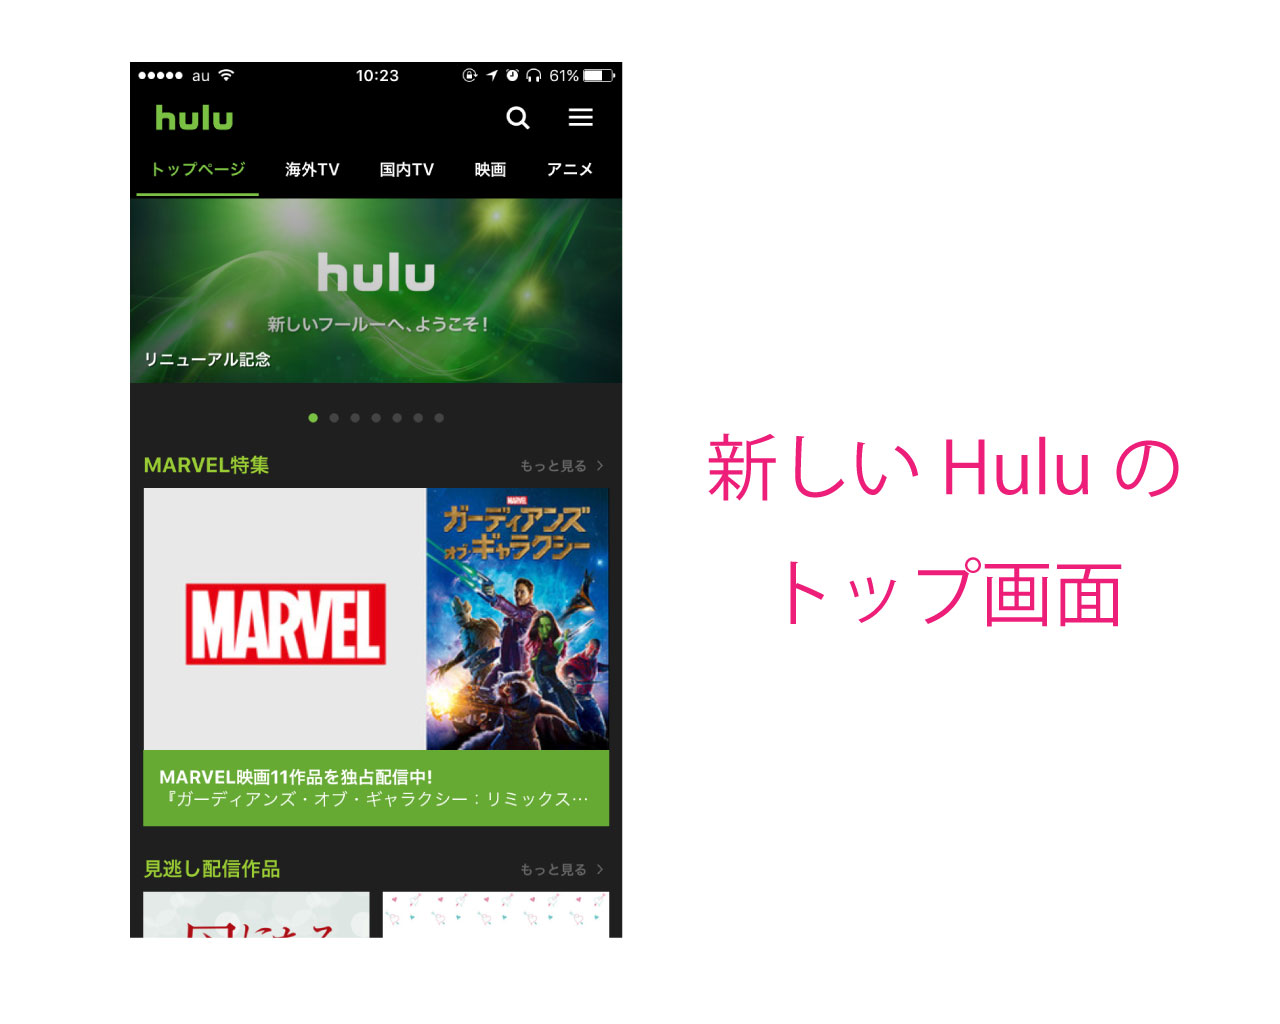 new-hulu-happyon-jp-login-0517-5